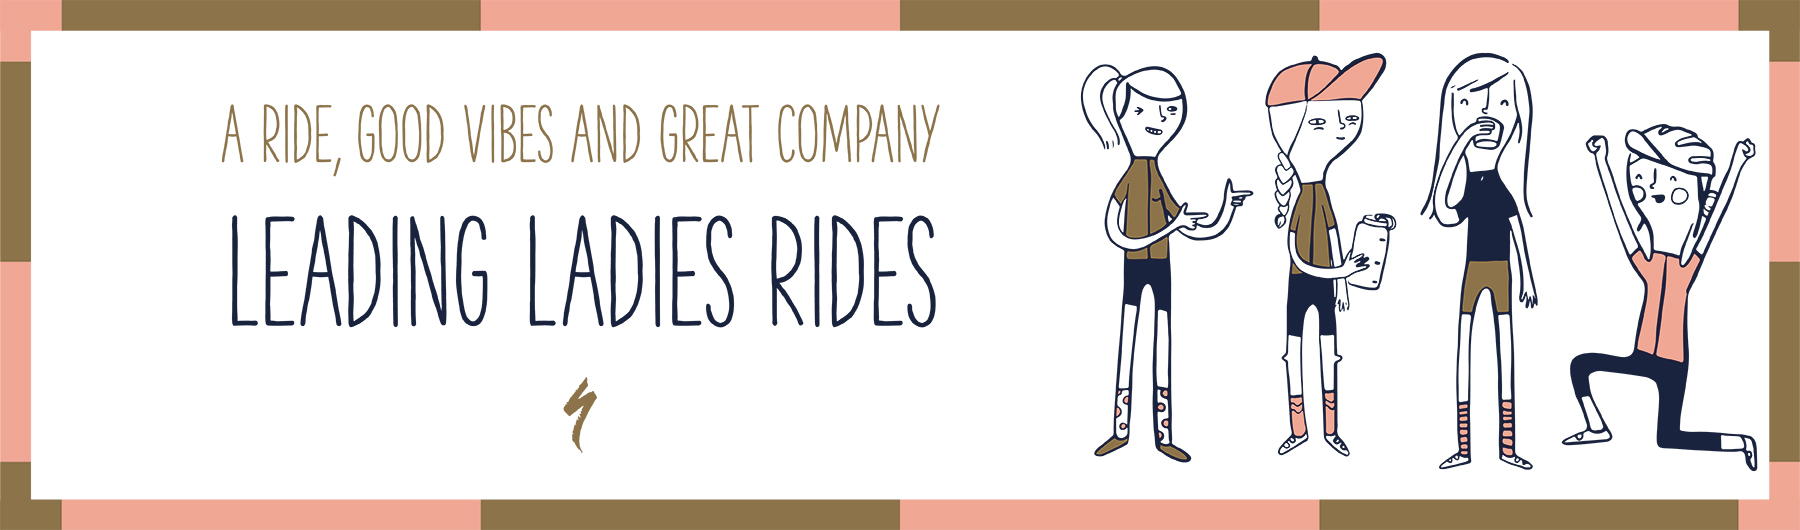 Leading Ladies Ride Series